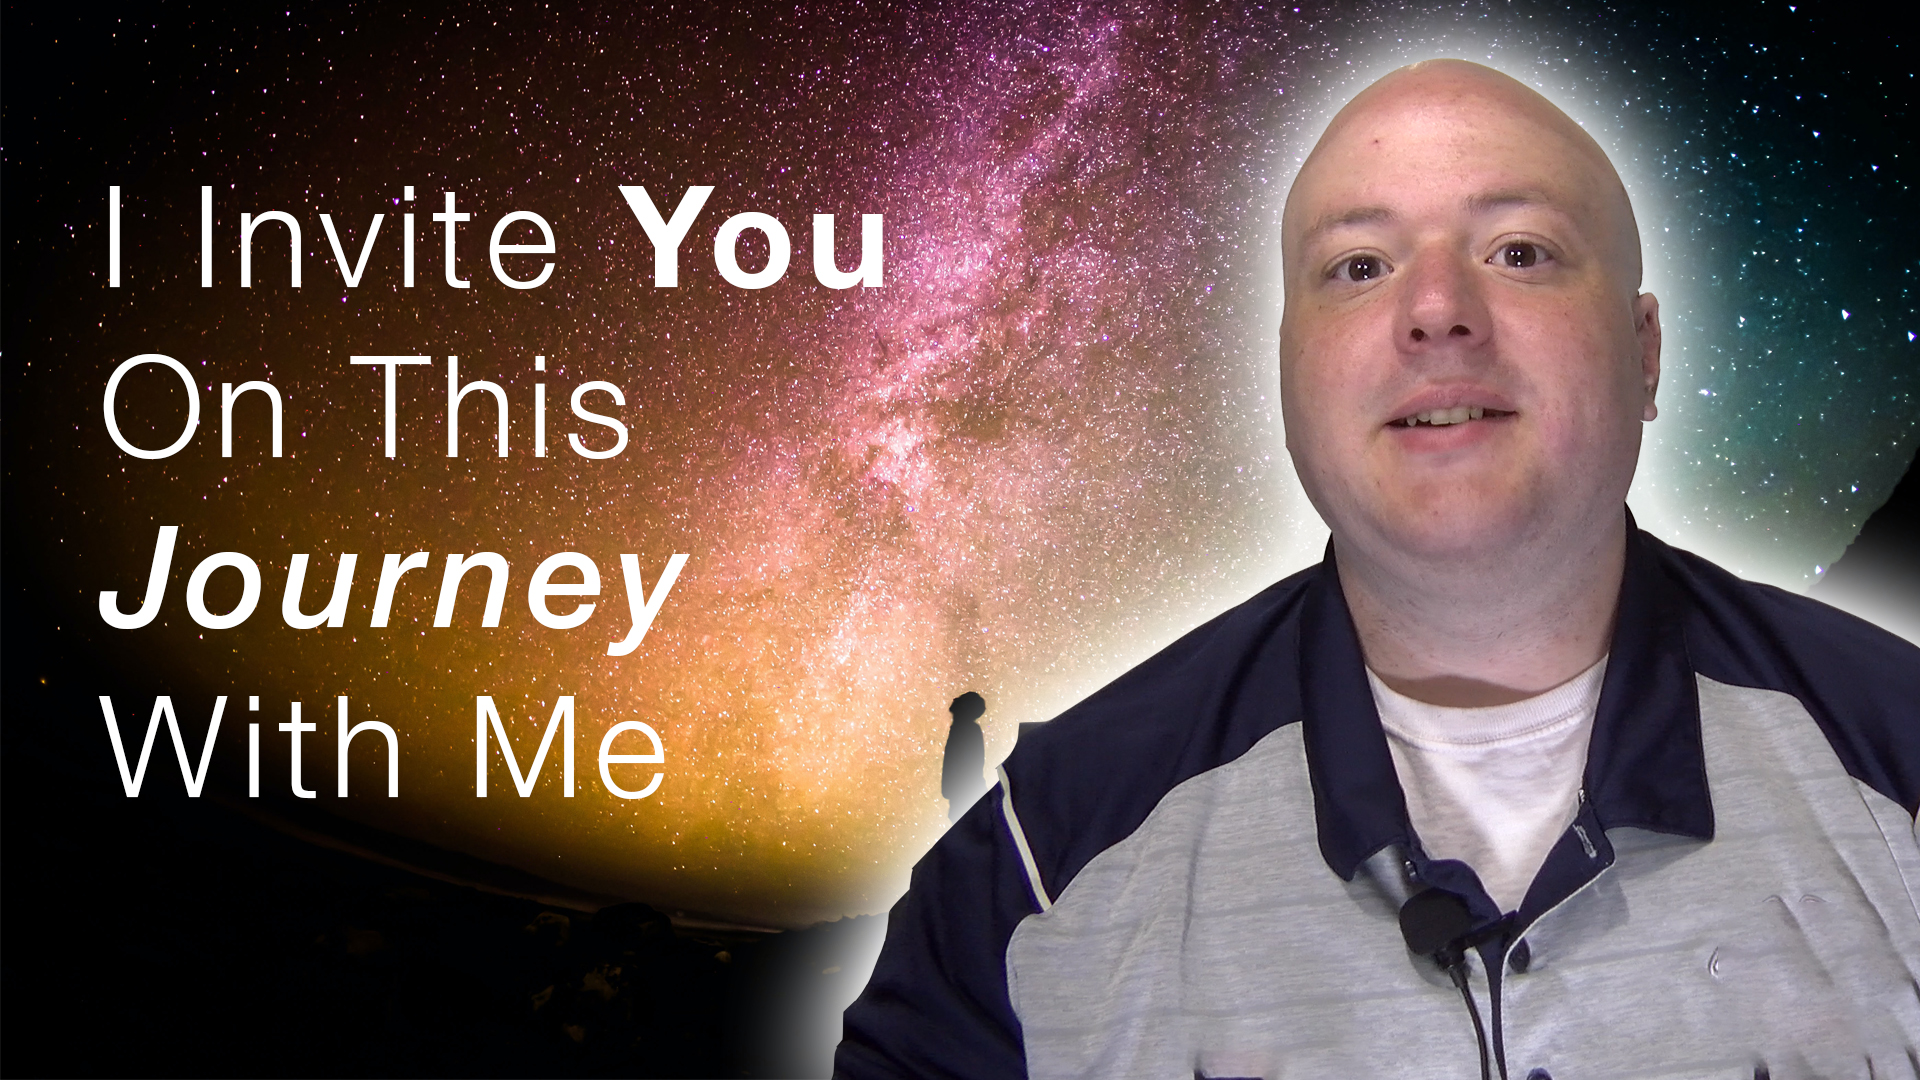 VLOG 1 -I Invite You to Take This Journey With Me